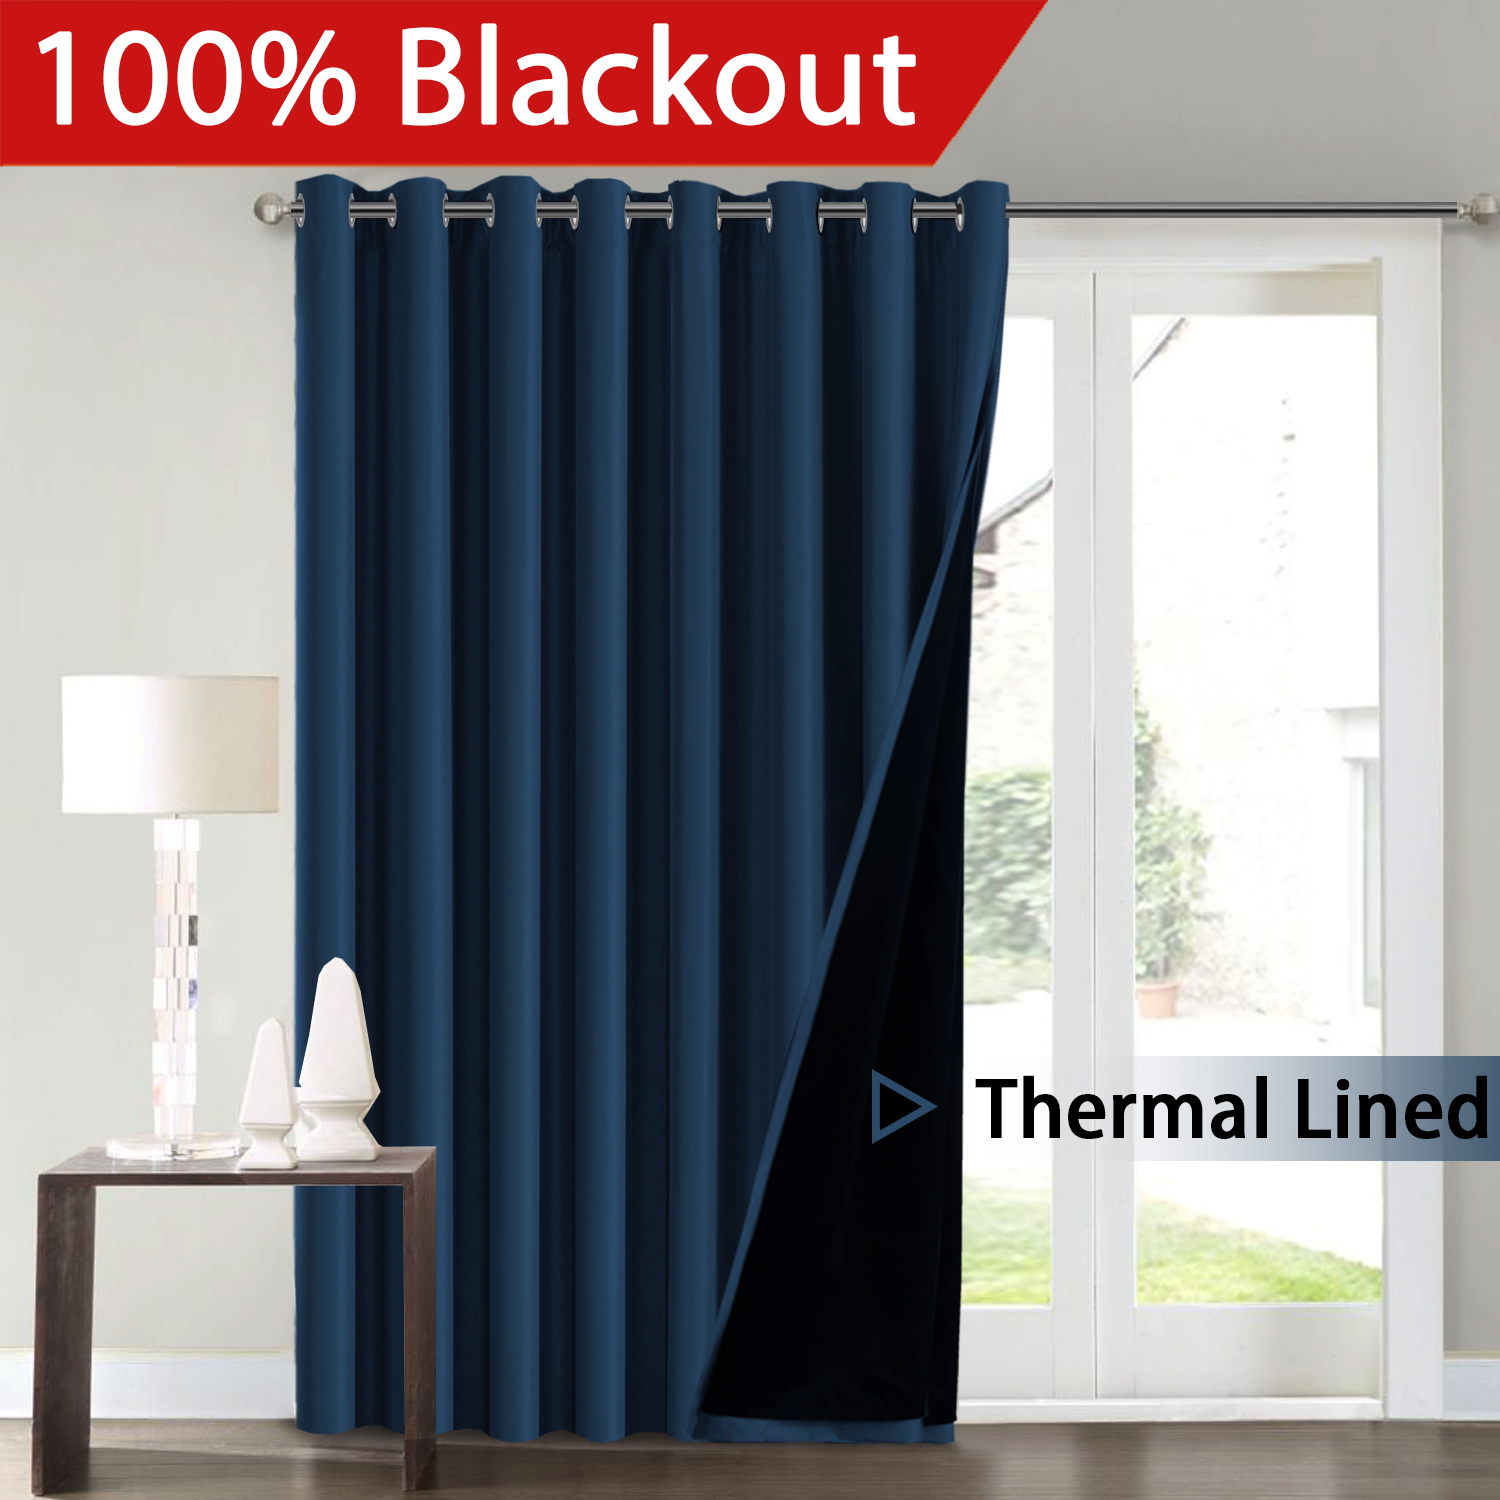 H.Versailtex Full Blackout White Wide Patio Door Curtains Faux Silk Satin with Black Liner Thermal Insulated Room... by FlamingoP